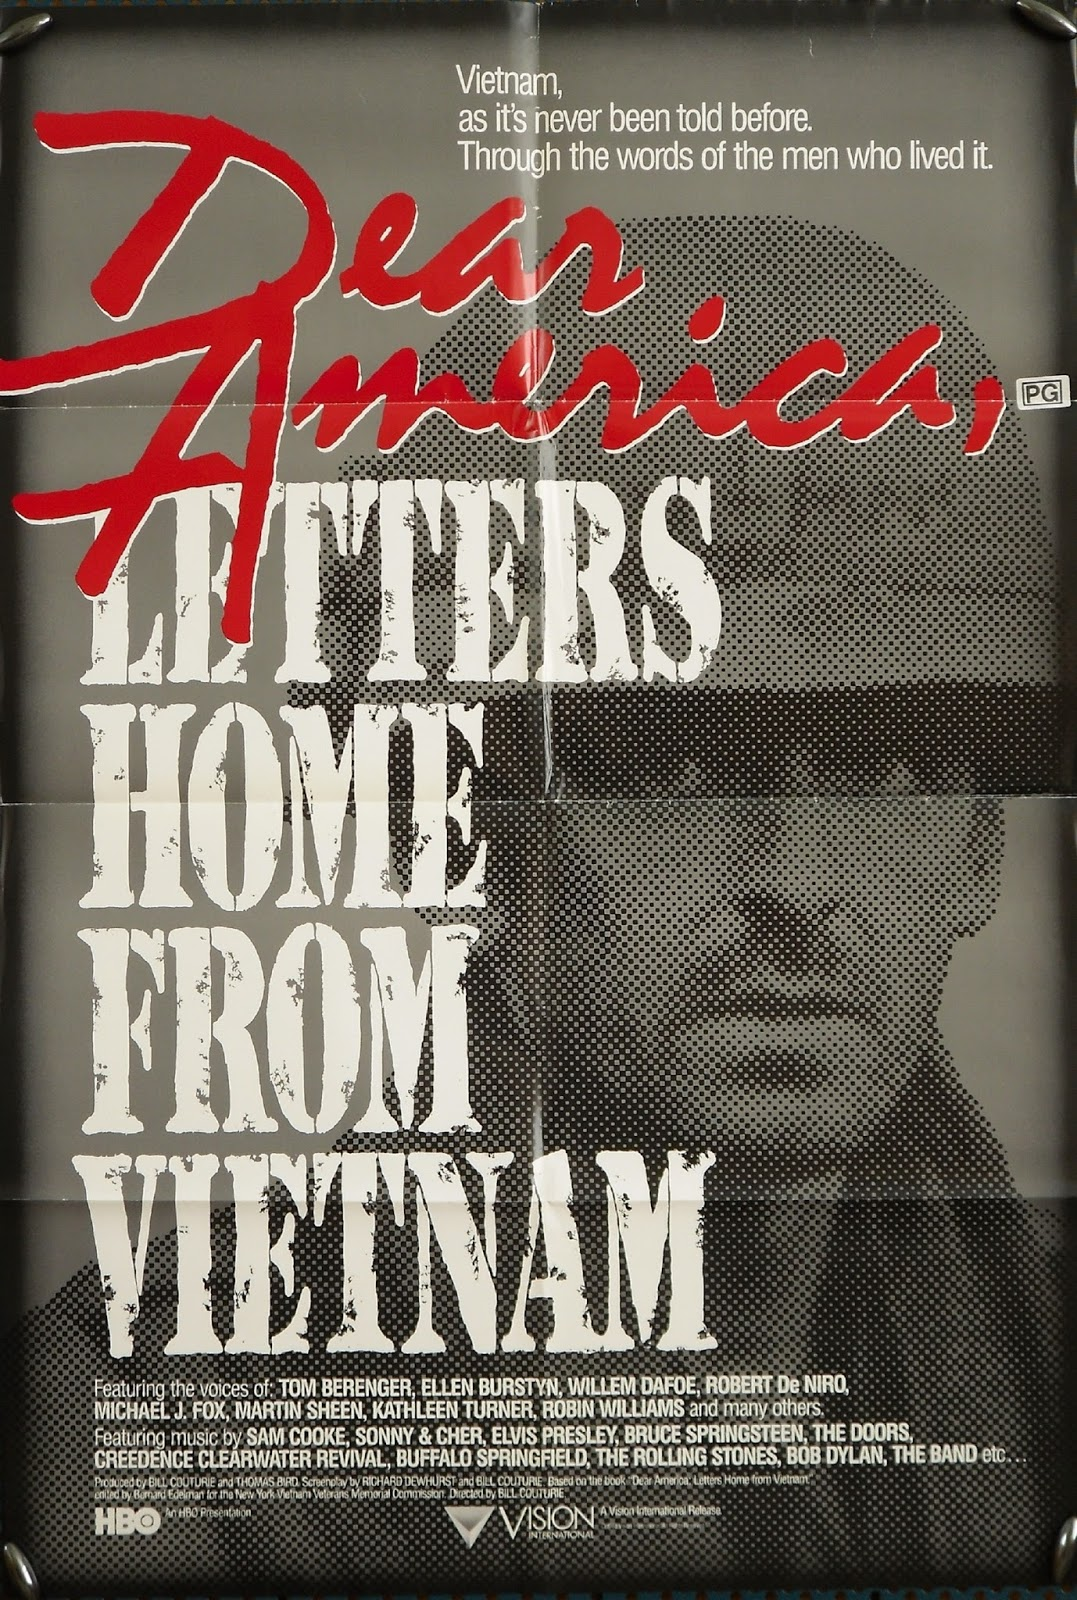 Dear america letters home from vietnam essay